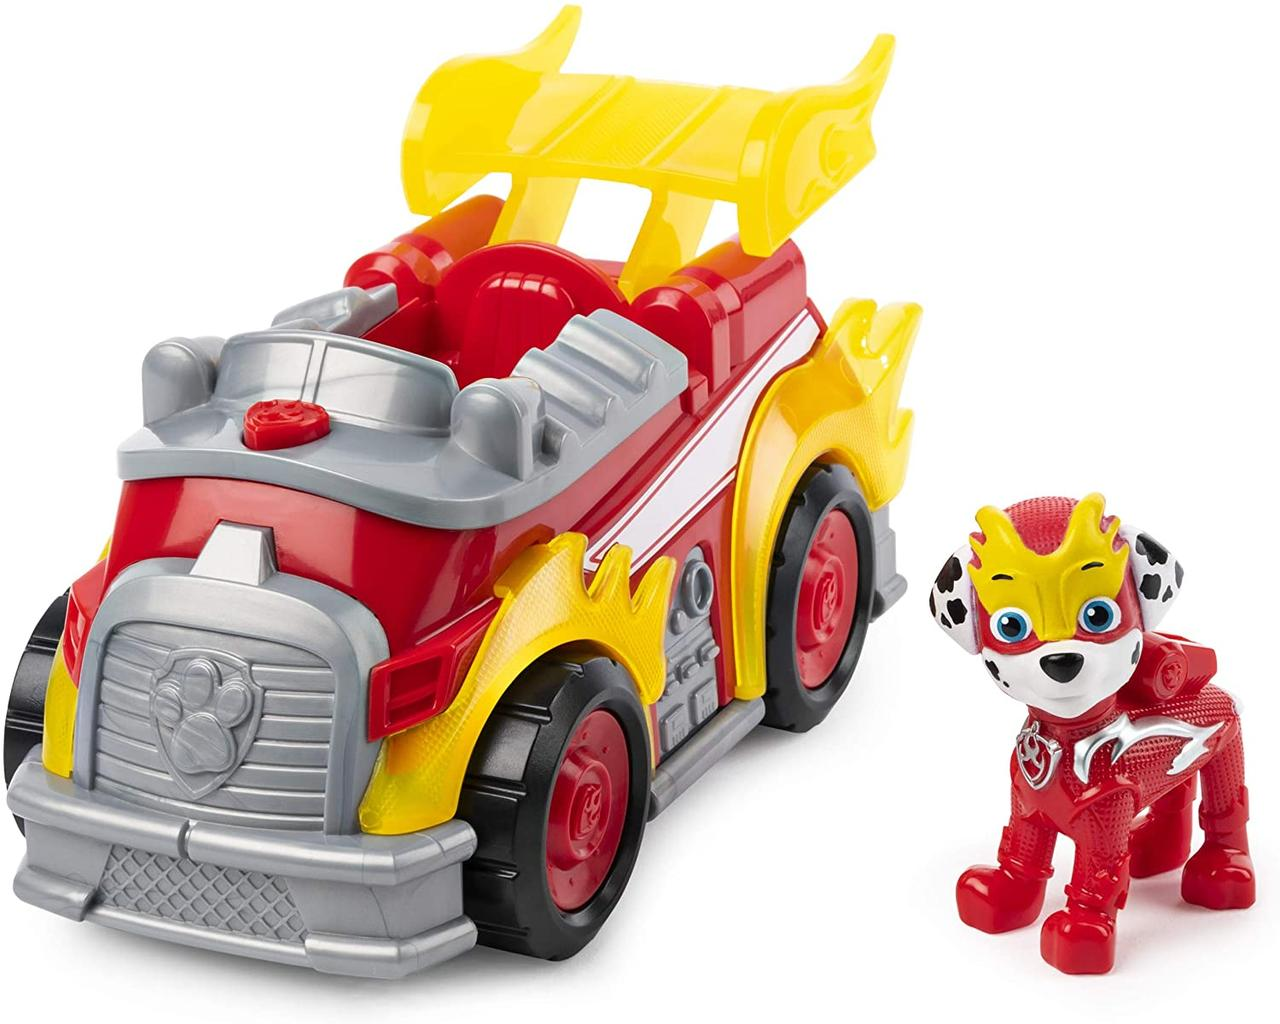 Paw Patrol Mighty Pups Super Paws Marshall's Deluxe Vehicle with Lights & Sound (Маршалл, звук, свет)